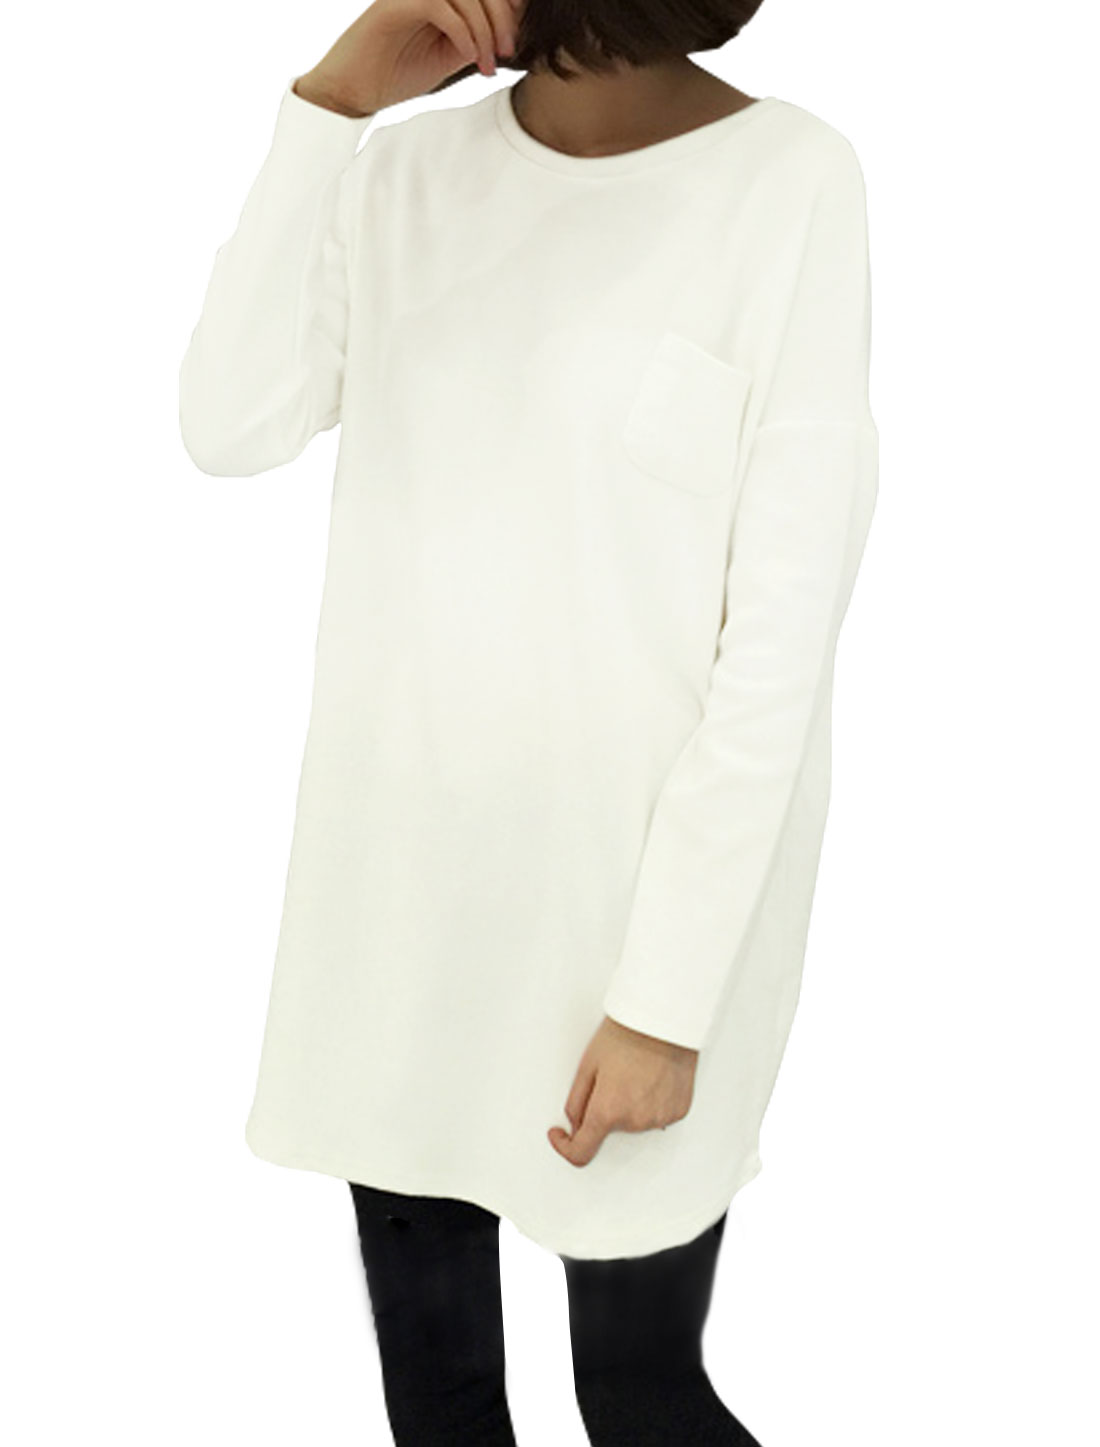 Women Dolman Sleeves Drop Shoulder Loose Tunic Blouse White S